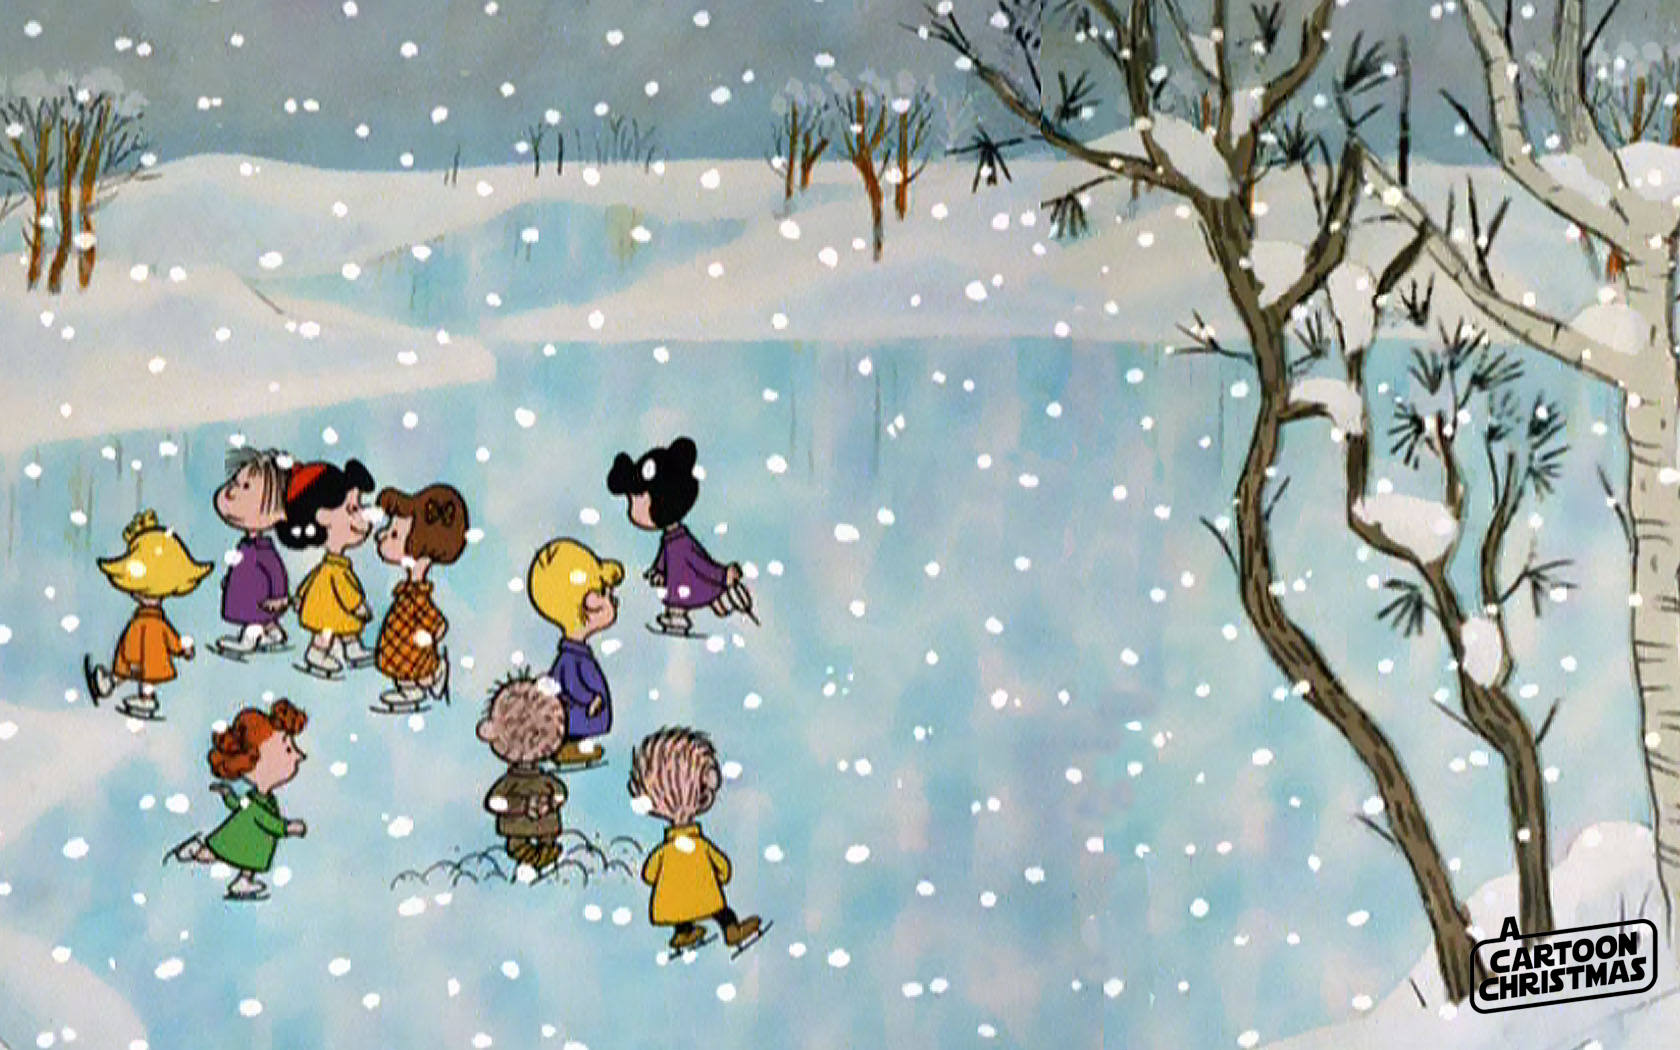 Charlie Brown Wallpaper and Screensaver submited images 1680x1050